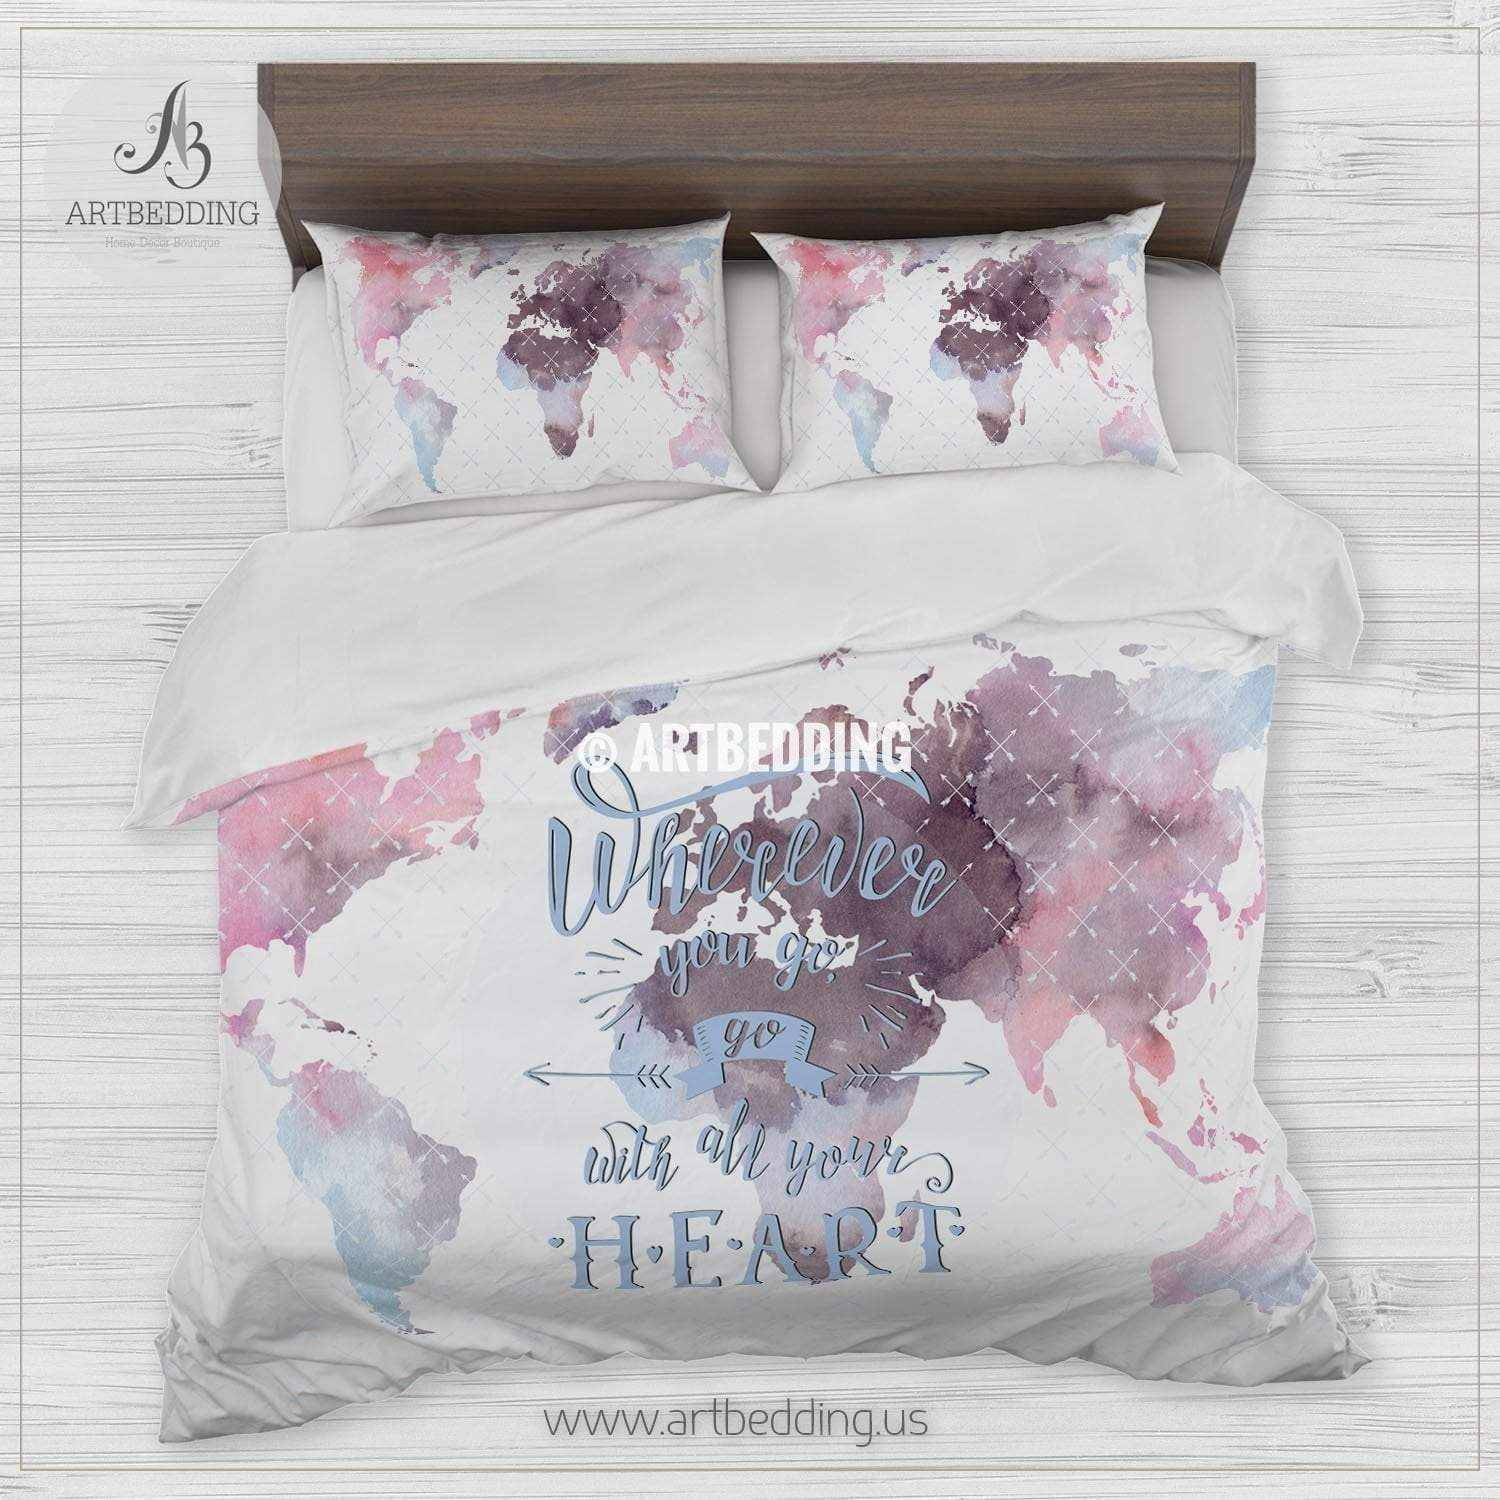 World Map Comforter Boho world map bedding, Watercolor map quote duvet cover set  World Map Comforter